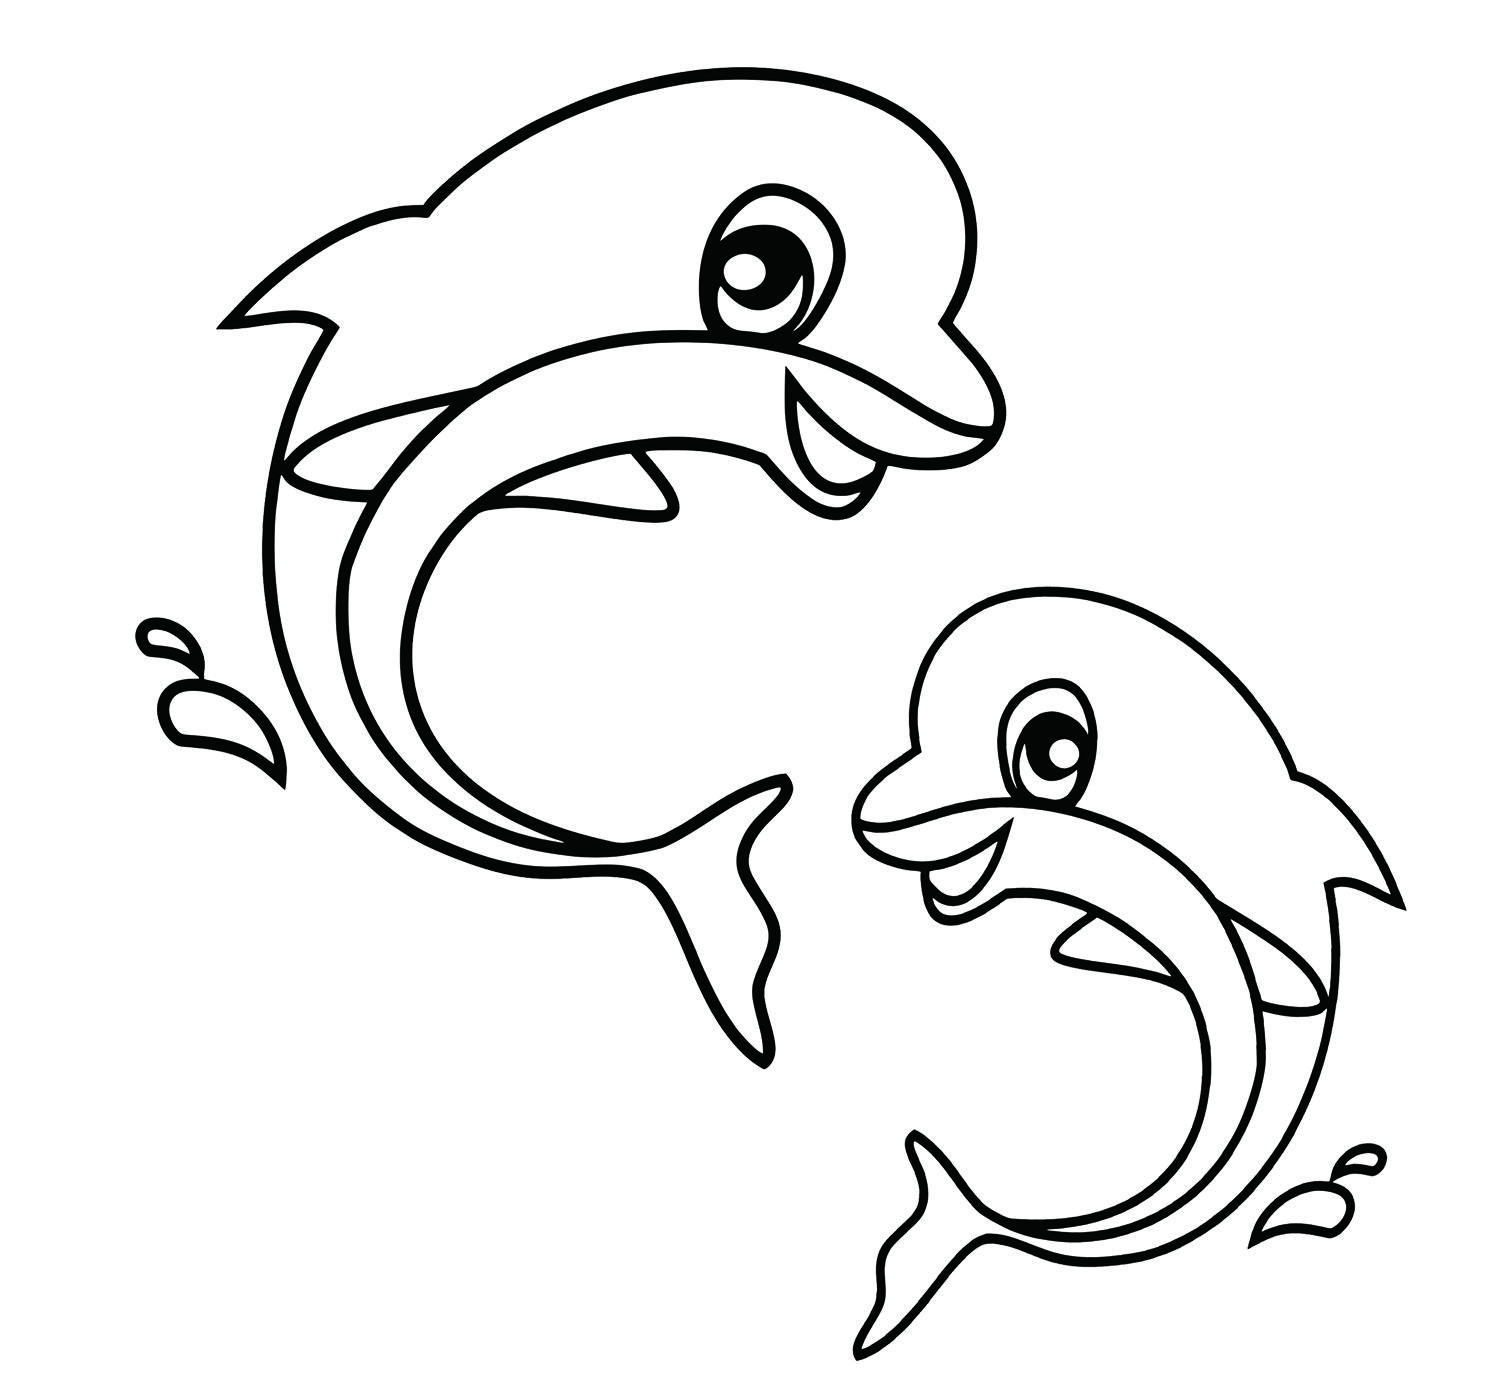 Easy Coloring Pages Dolphin Coloring Pages Easy Coloring Pages Cute Coloring Pages